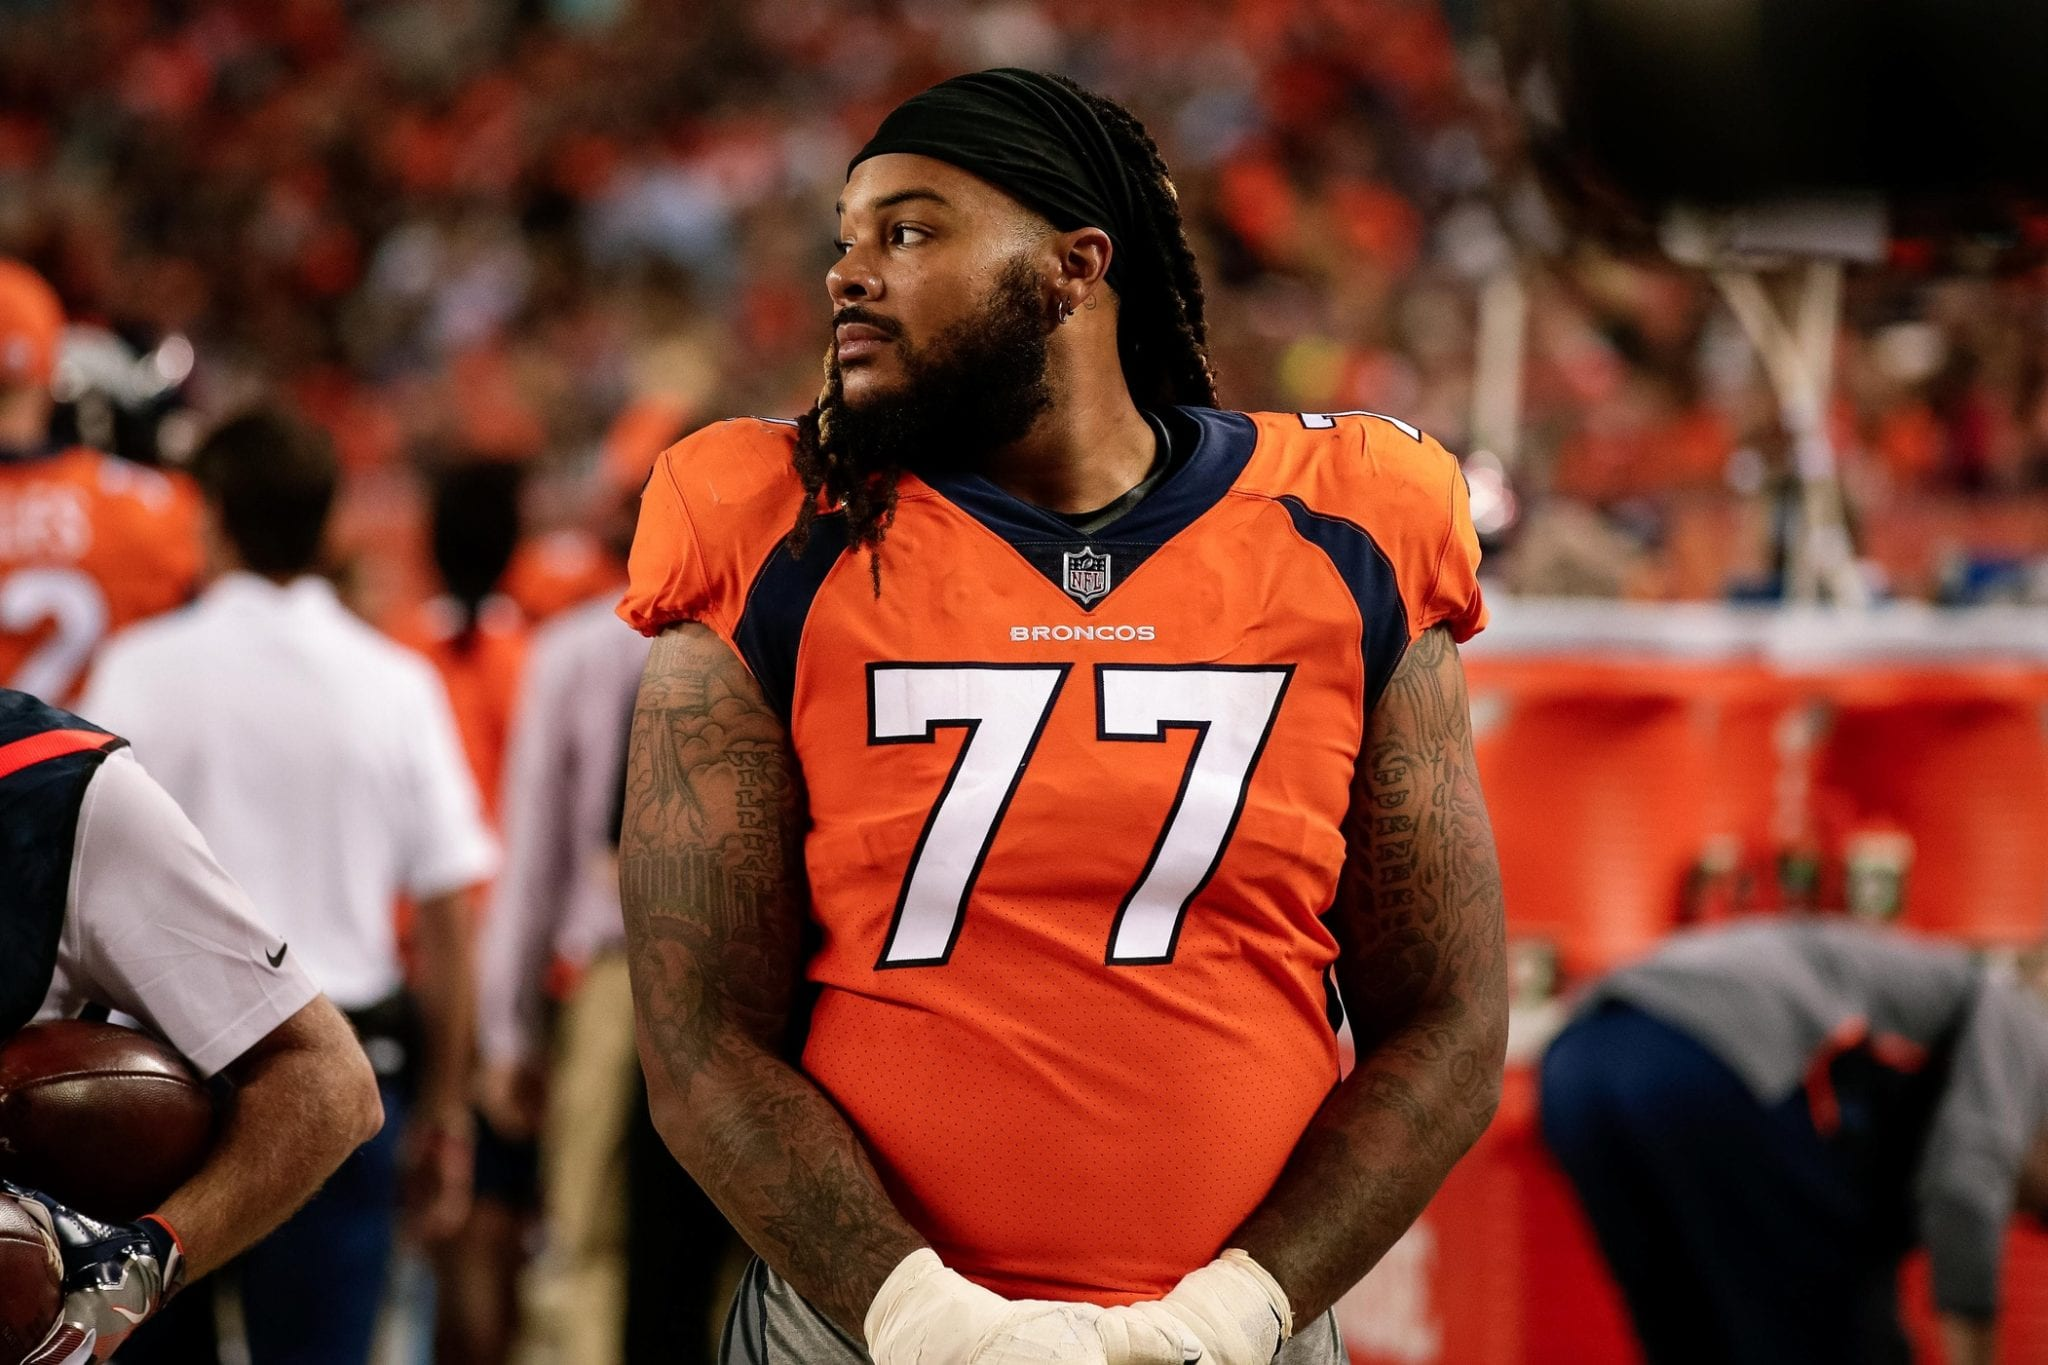 reputable site bf74c 6d7b4 Broncos Still Want To Re-Sign OL Billy Turner, Cardinals ...